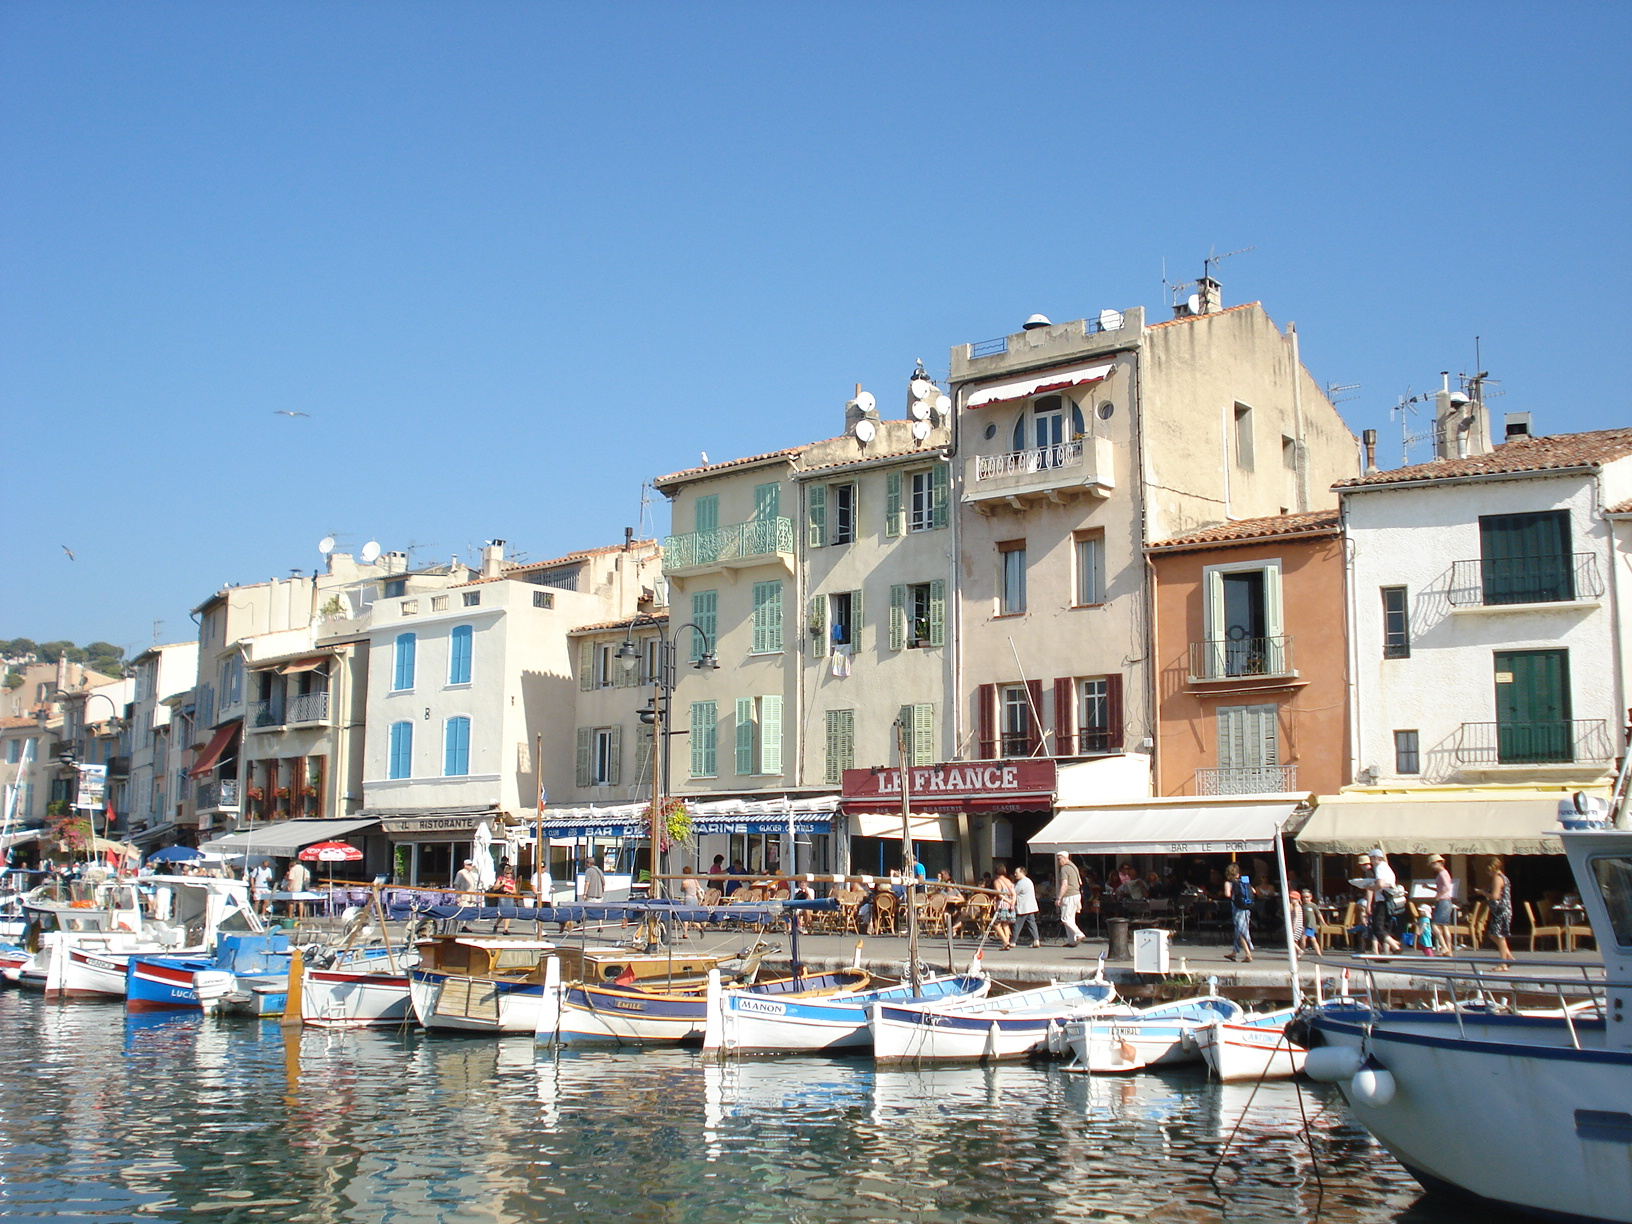 Harbor side in Cassis - a lovely low-key village on the French Riviera (very close to Marseille)